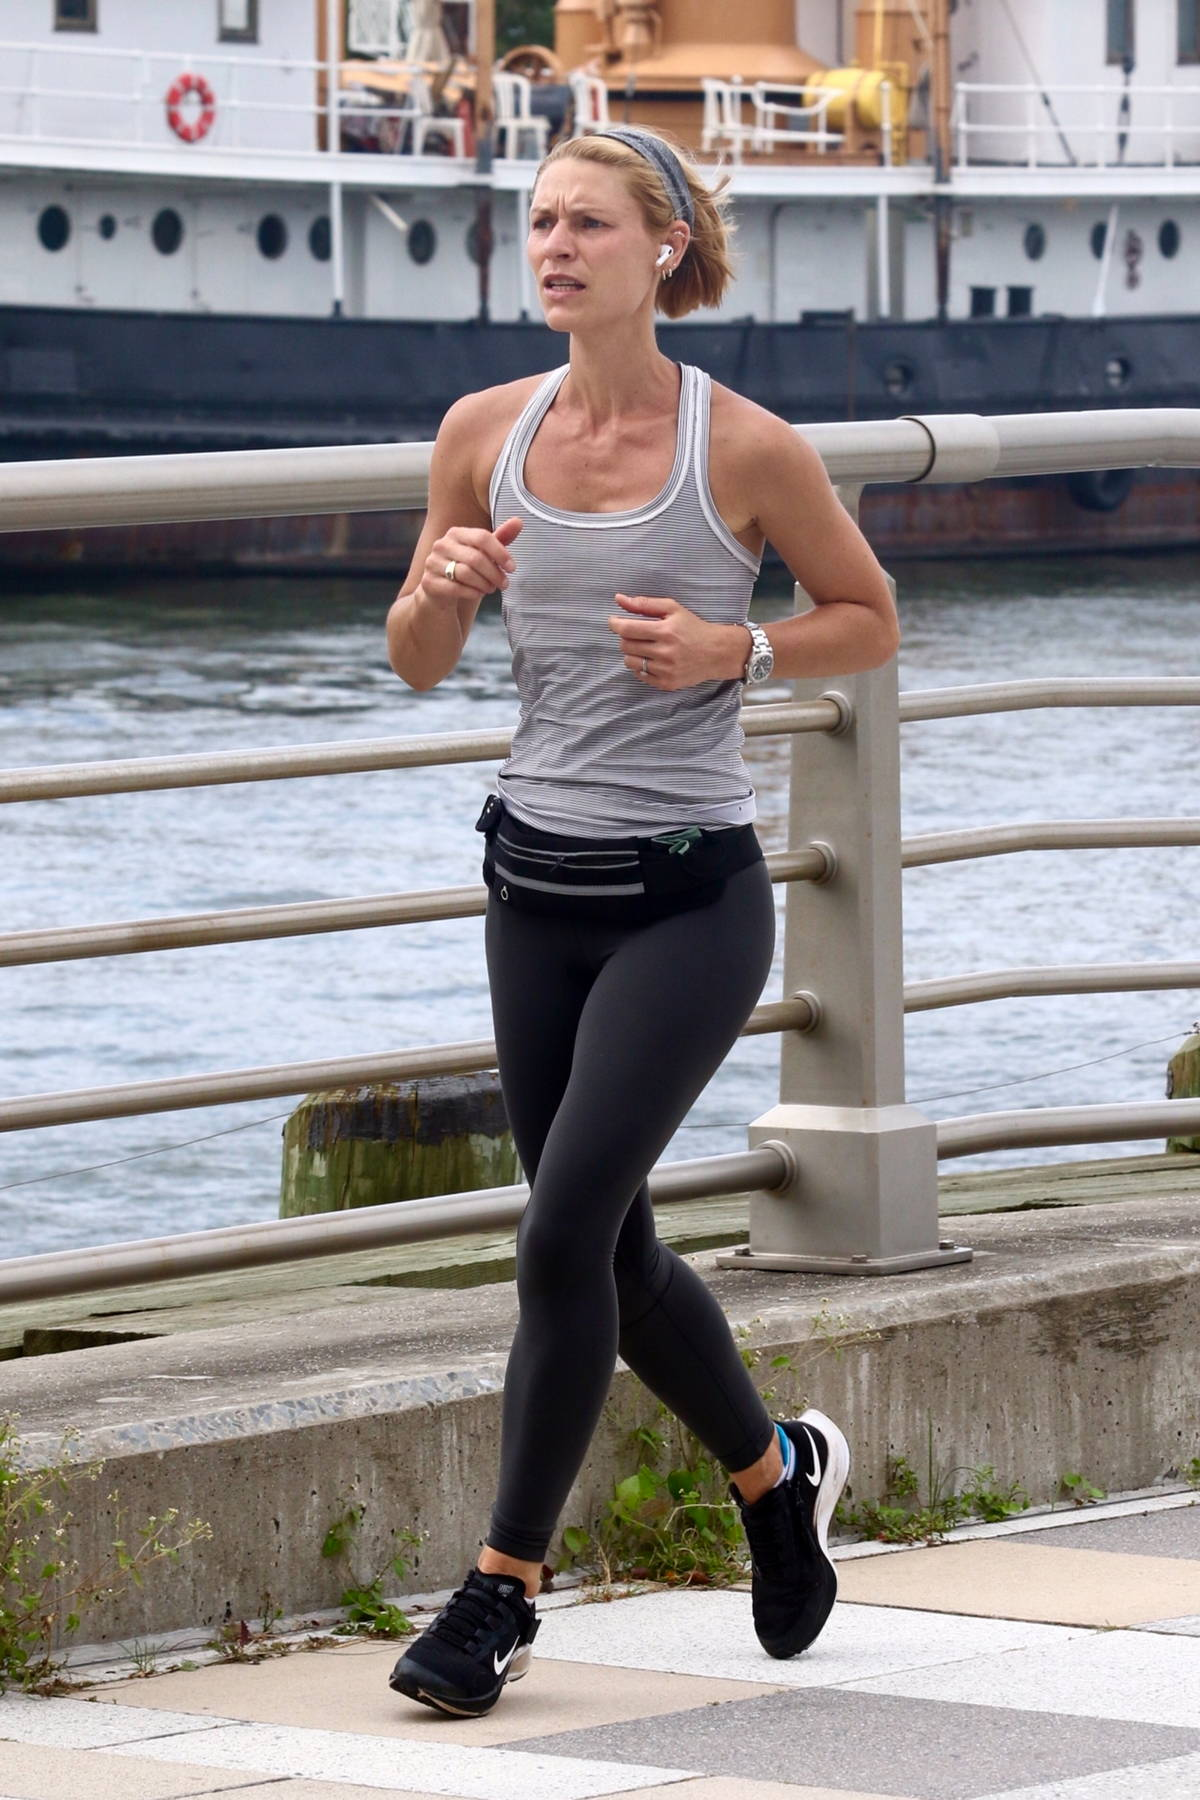 Claire Danes shows her toned physique while working up a sweat during an early morning jog in New York City